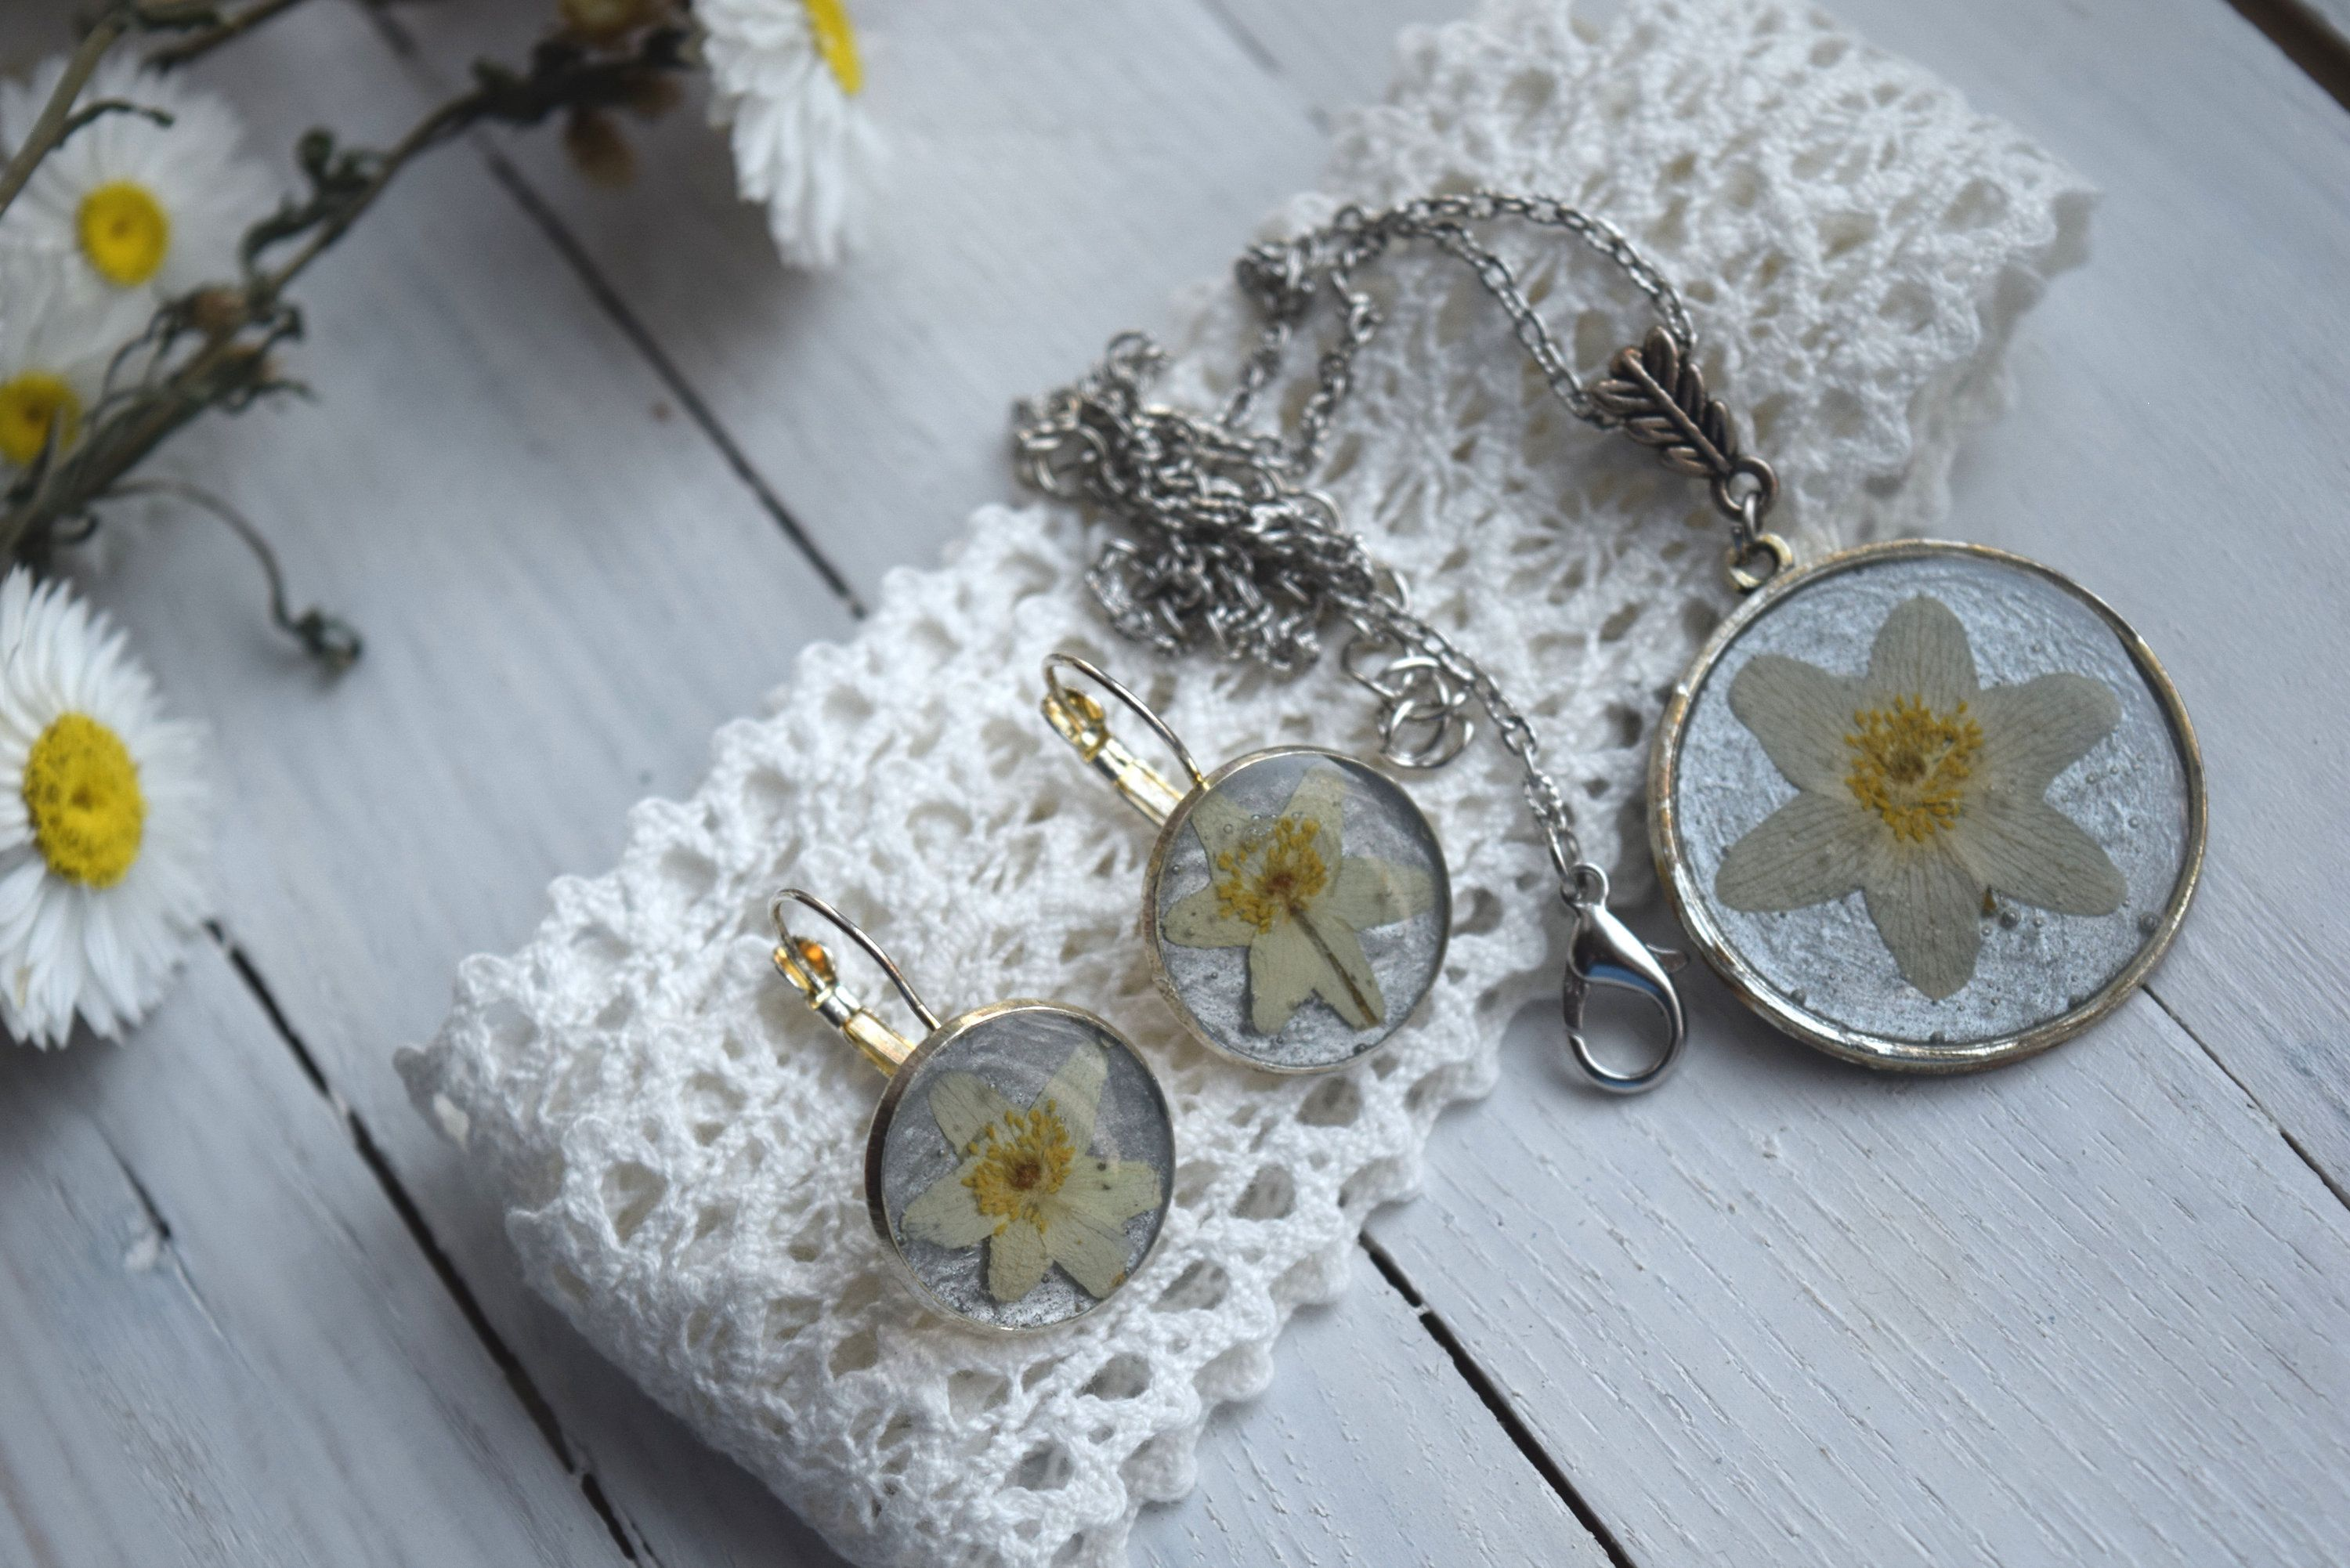 Set Of Real Flower Jewelry Dried Plant Pendant And Earrings Anemone Necklace Epoxy Resin Jewelry Real Flower Jewelry Christmas Gift Jewelry Flower Jewellery